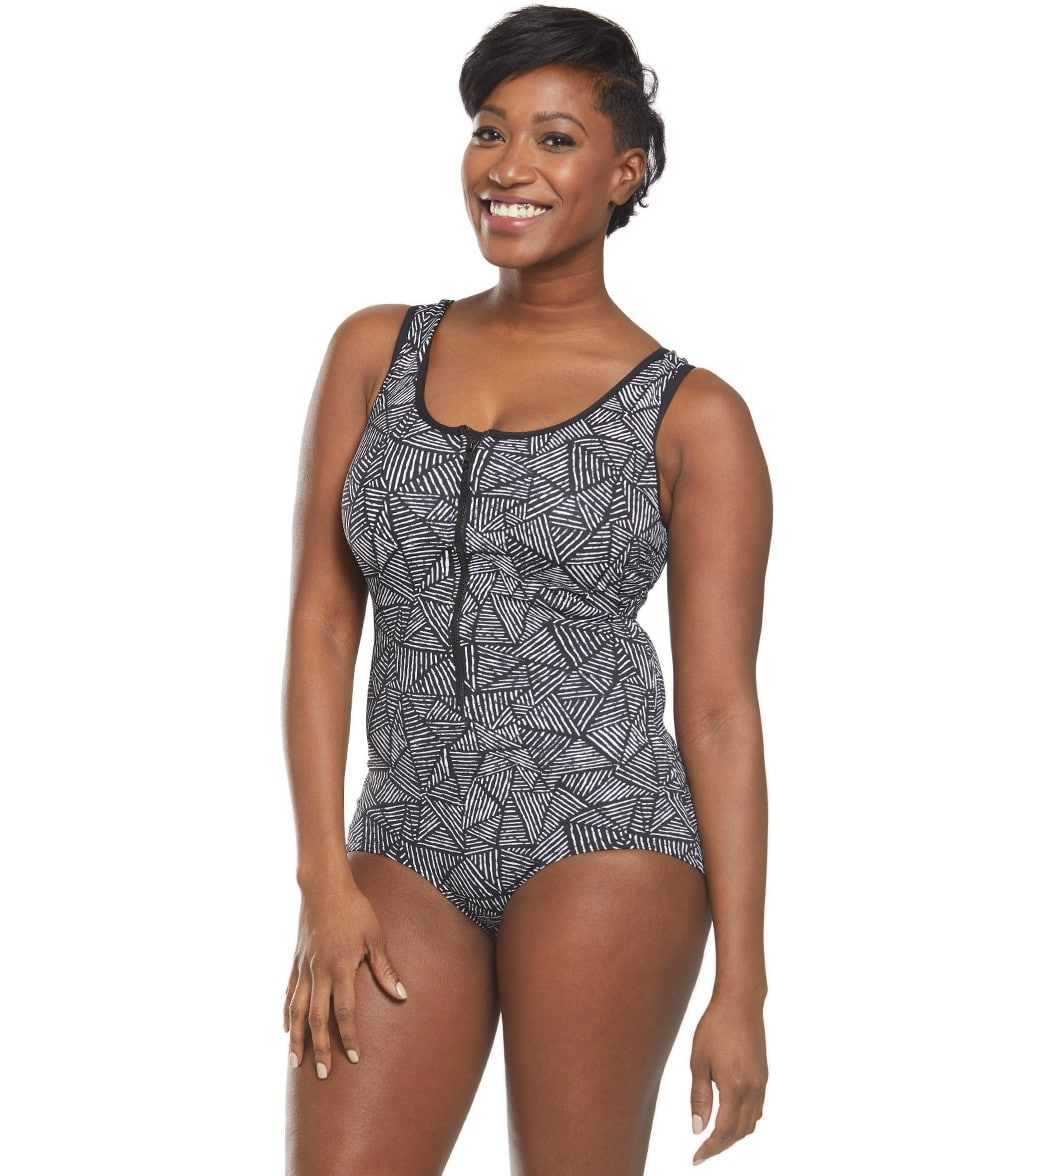 Funkita Women s Black Widow Zip Front One Piece Swimsuit at SwimOutlet.com  - Free Shipping 75949610f